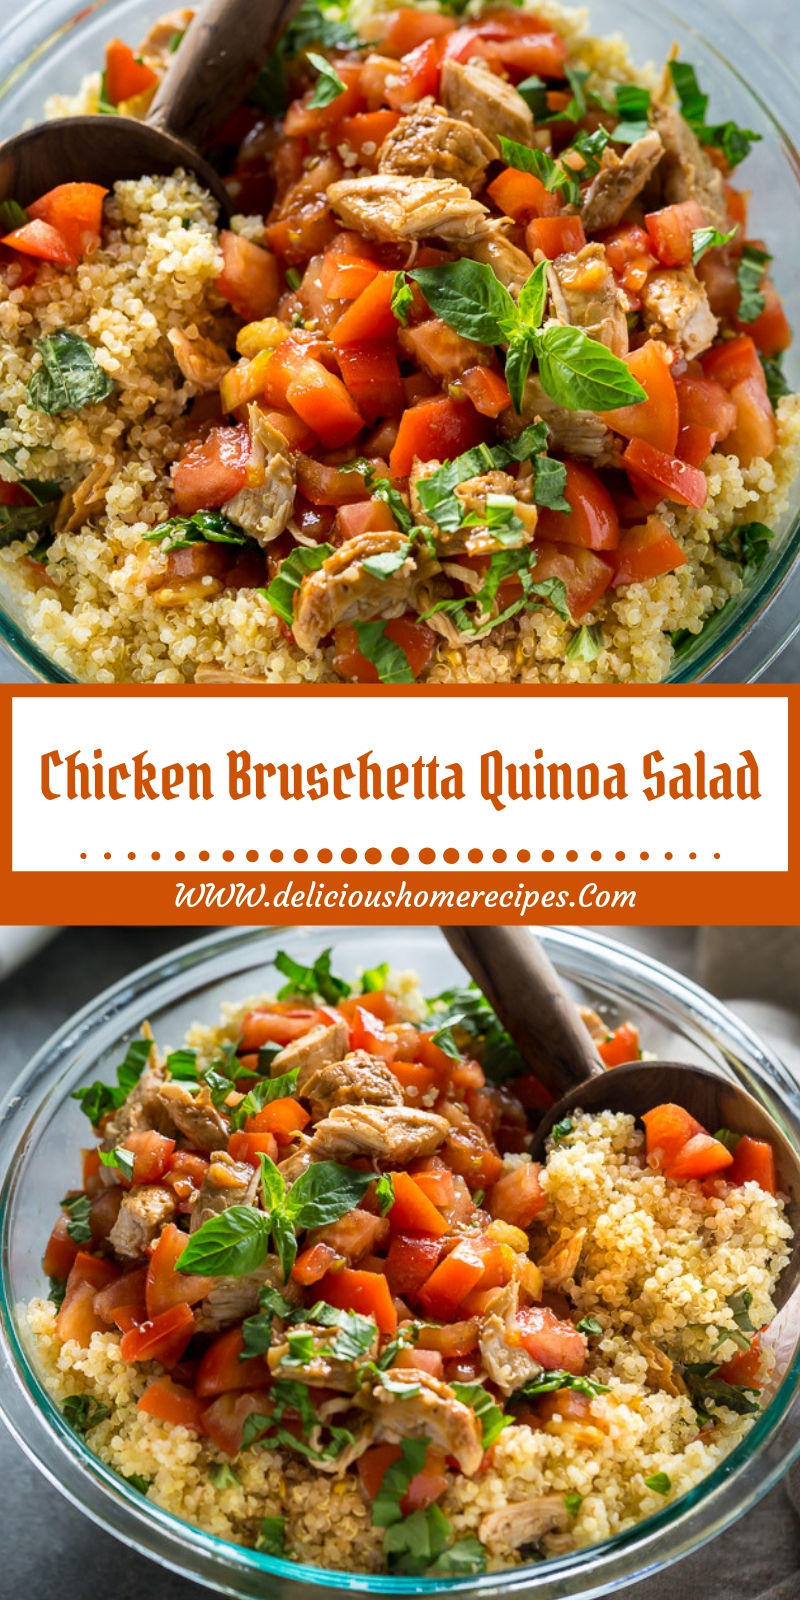 Chicken Bruschetta Quinoa Salad